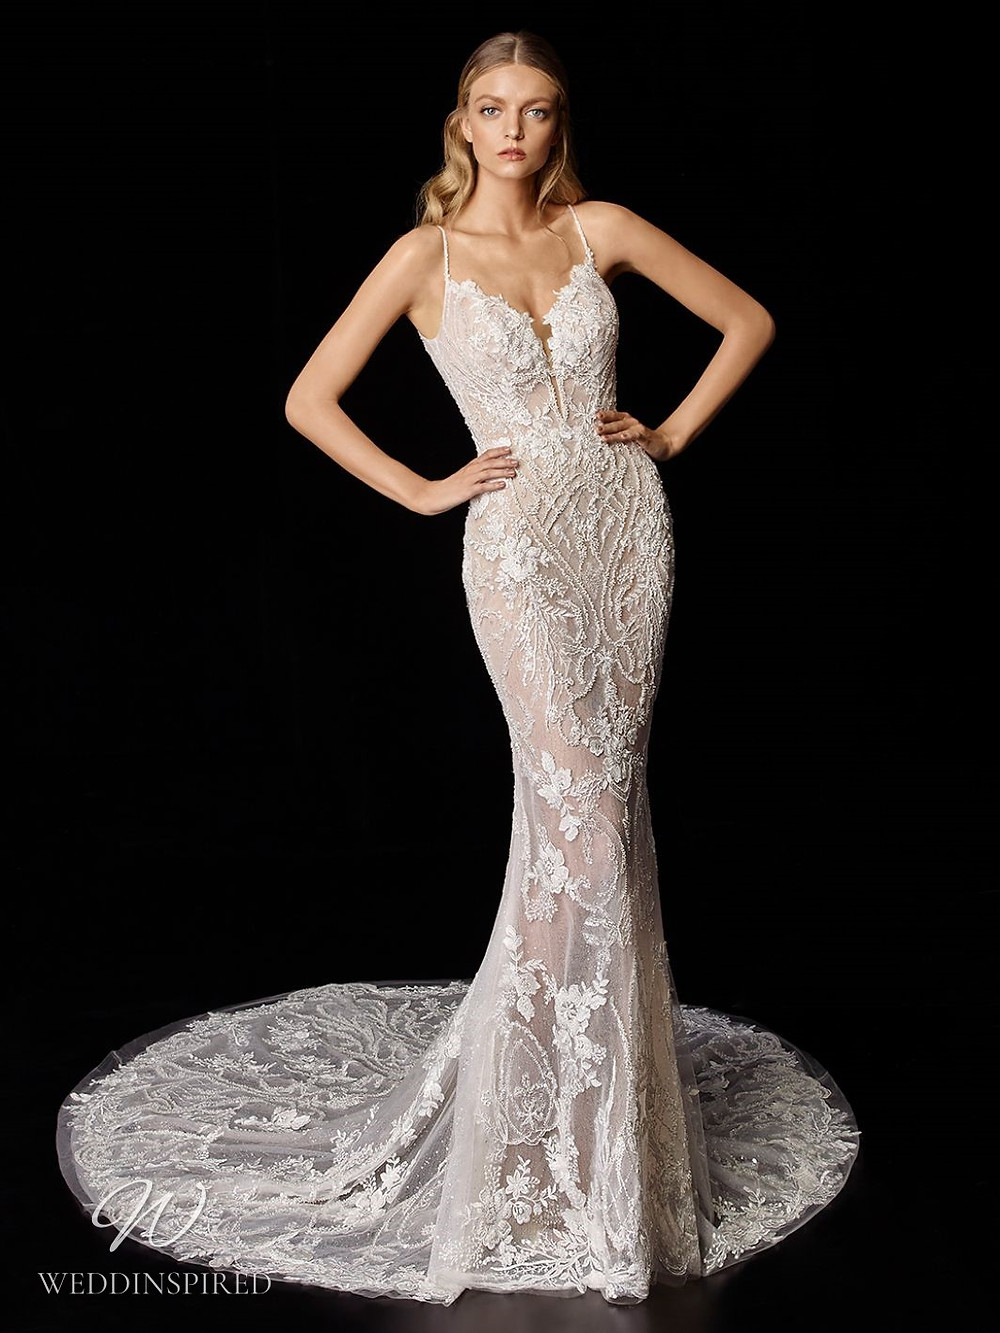 An Enzoani lace mermaid wedding dress with thin straps and a train